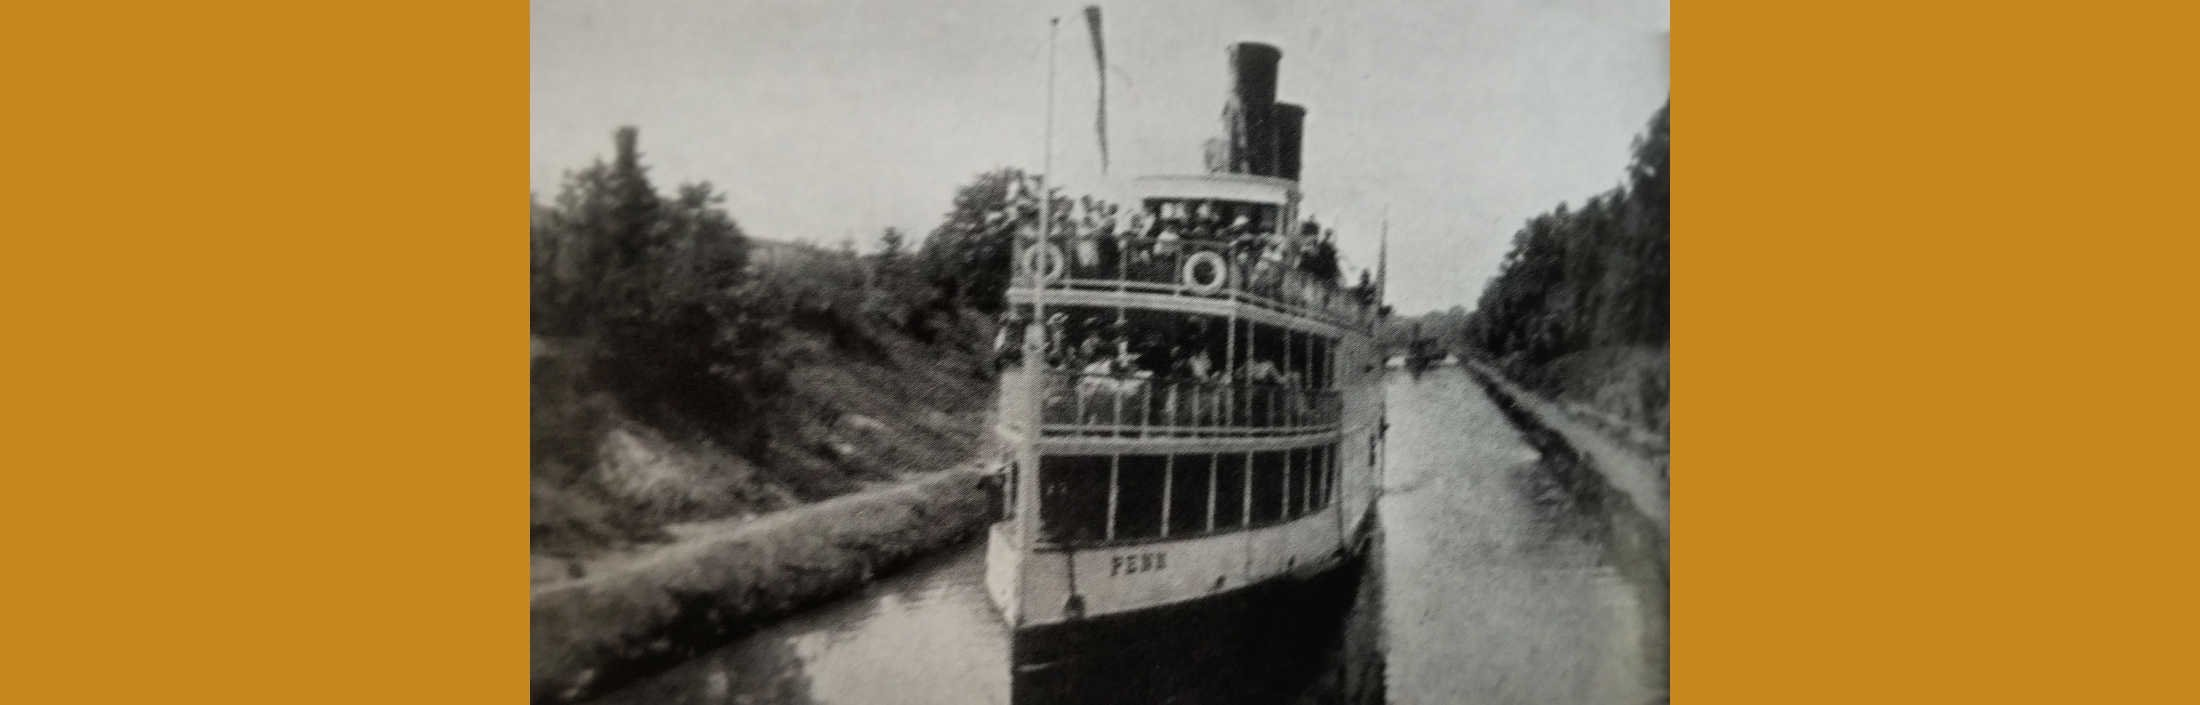 """QUOTE OF THE DAY: """"The stately looking steamboat … cautiously, almost stealthily edged her way into the locks"""" of the C&D Canal."""